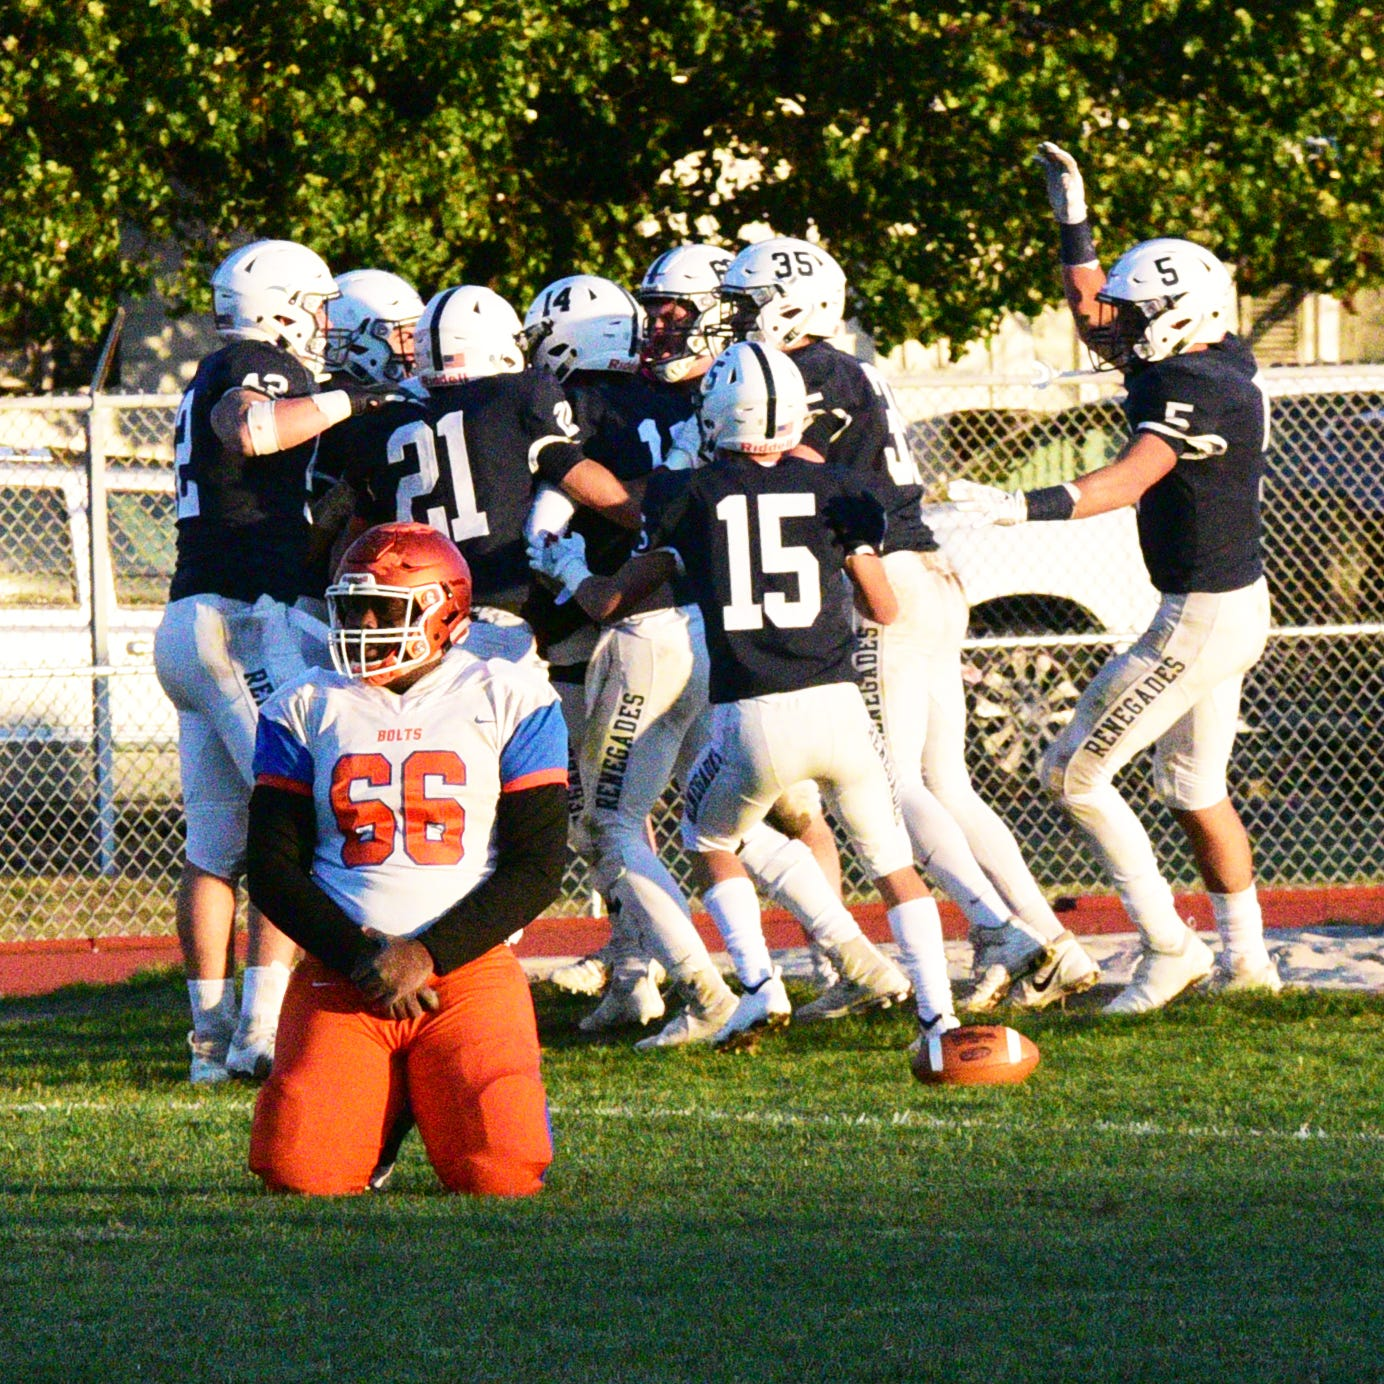 Football: Shawnee stuns Millville to reach title game